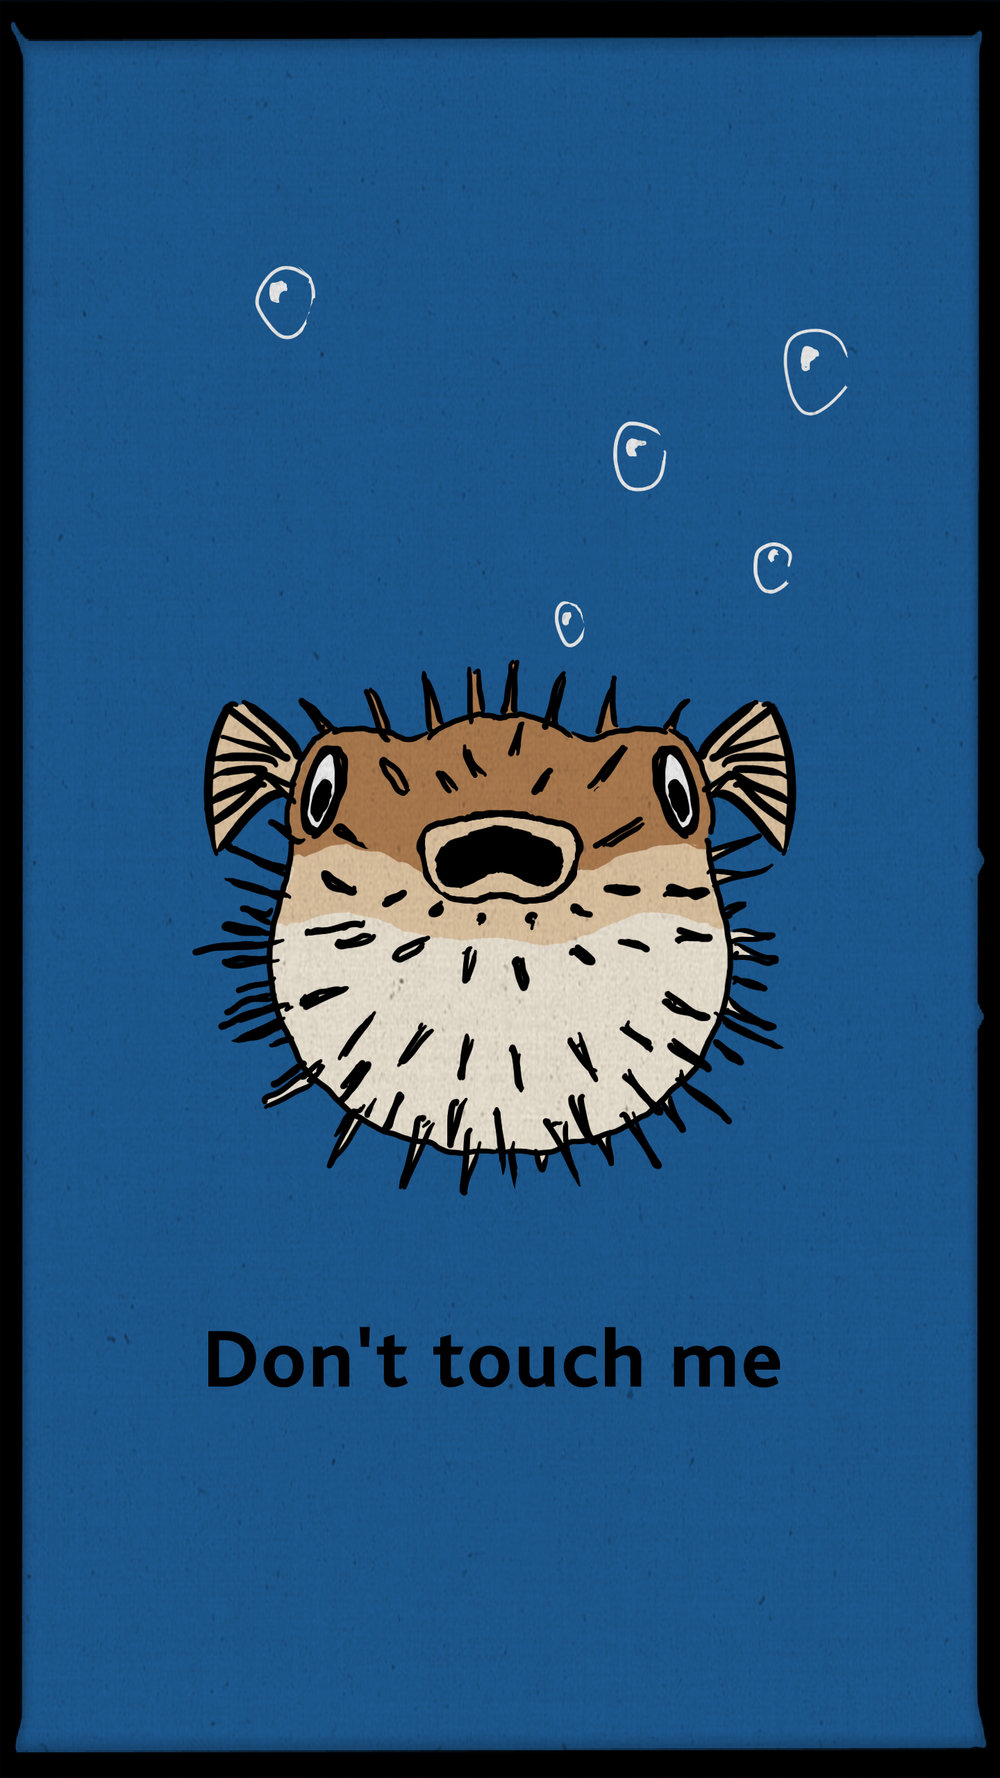 #4 Don't touch me.jpg